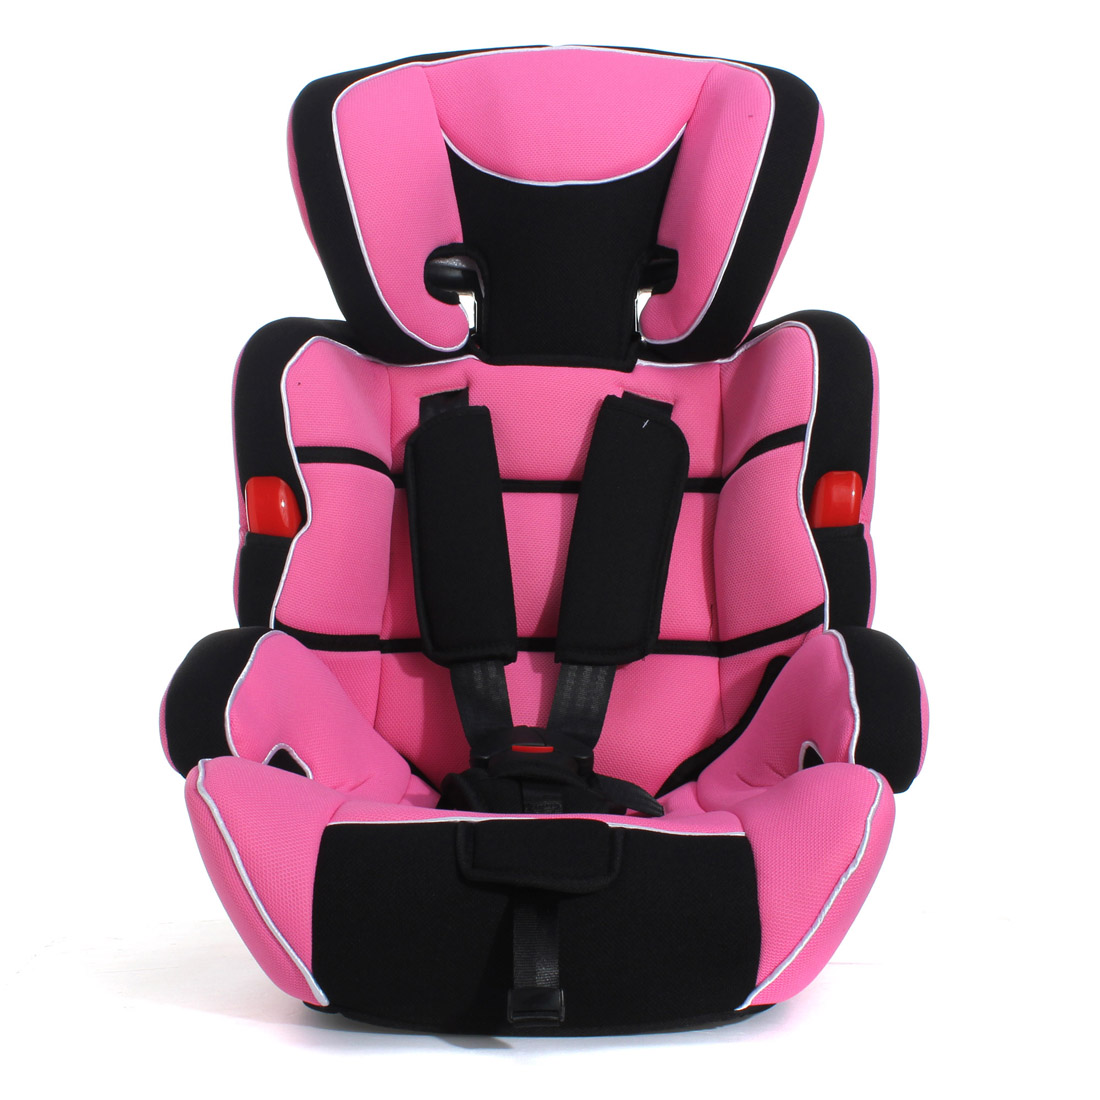 Pink Convertible Baby Kid Children Car Safety Seat & Booster Seat Group 1/2/3 9-36 KG Series C